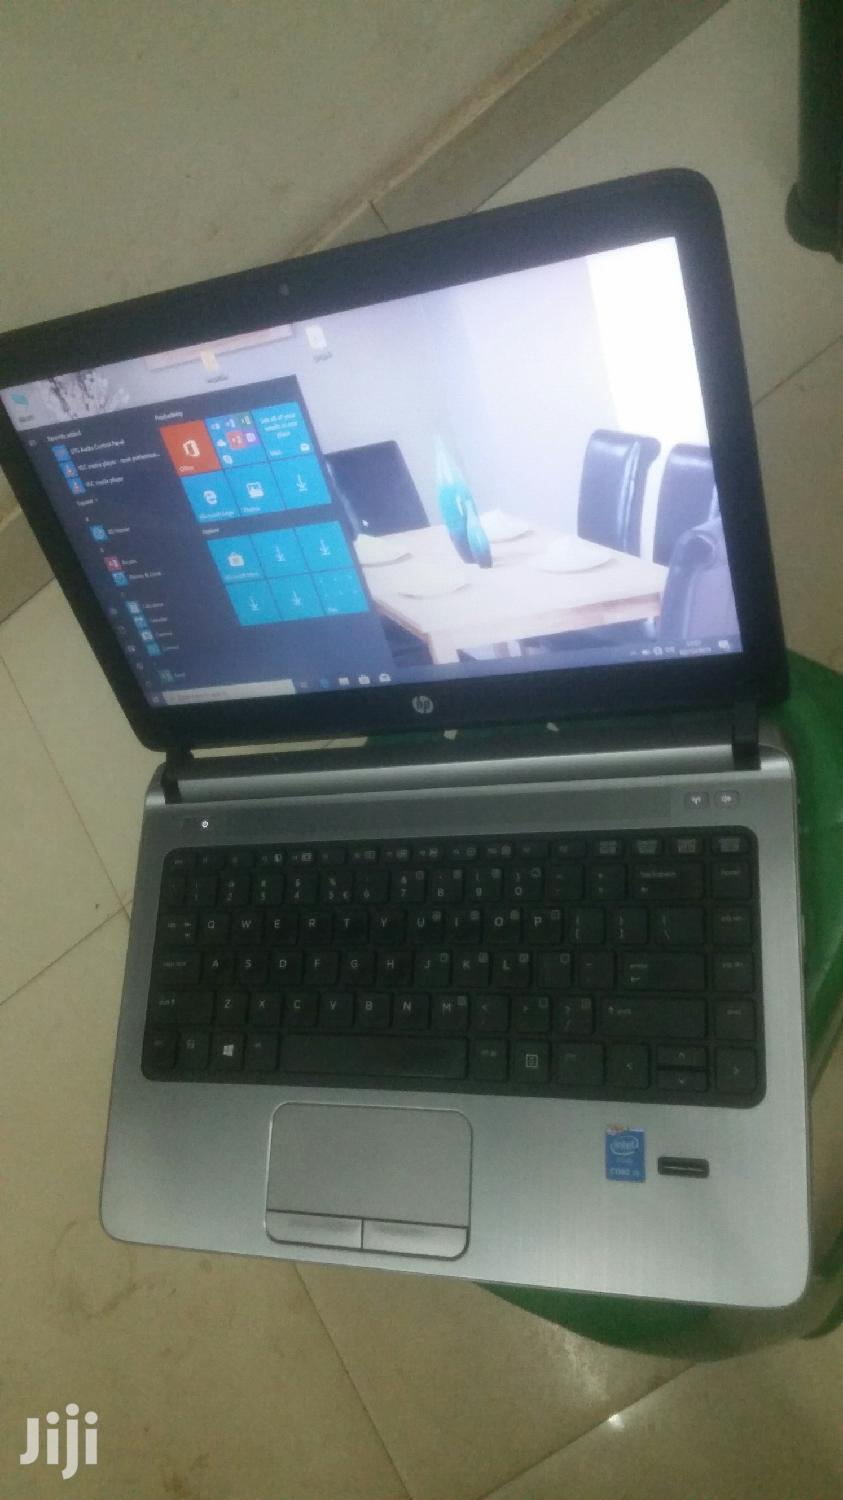 New Laptop HP ProBook 430 G4 4GB Intel Core i5 HDD 500GB